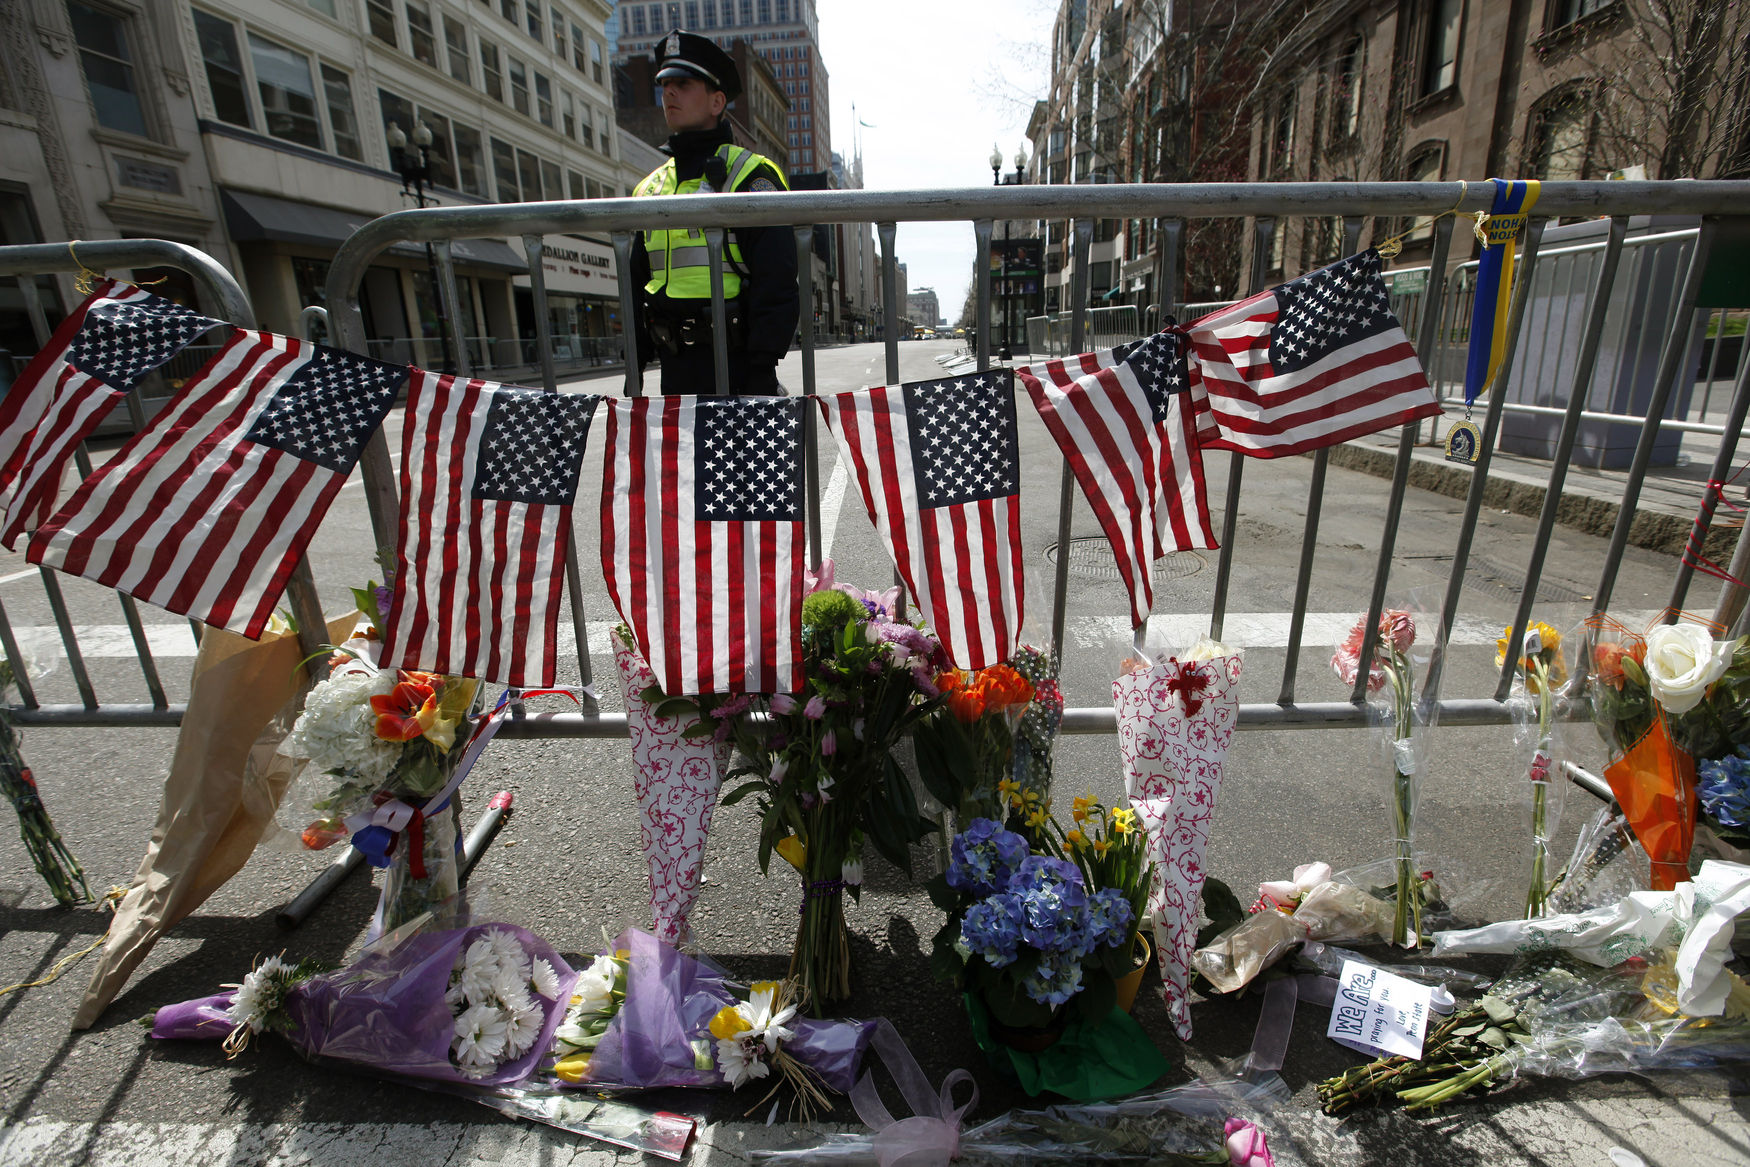 Boston Police officers stand guard at a makeshift memorial set up on Boylston Street in Boston, Massachusetts on April 16, 2013. Security is still high in the city after two bombs detonated on Boylston Street near the finish line of the Boston Marathon Monday afternoon killing 3 and injuring 150. UPI/Matthew Healey